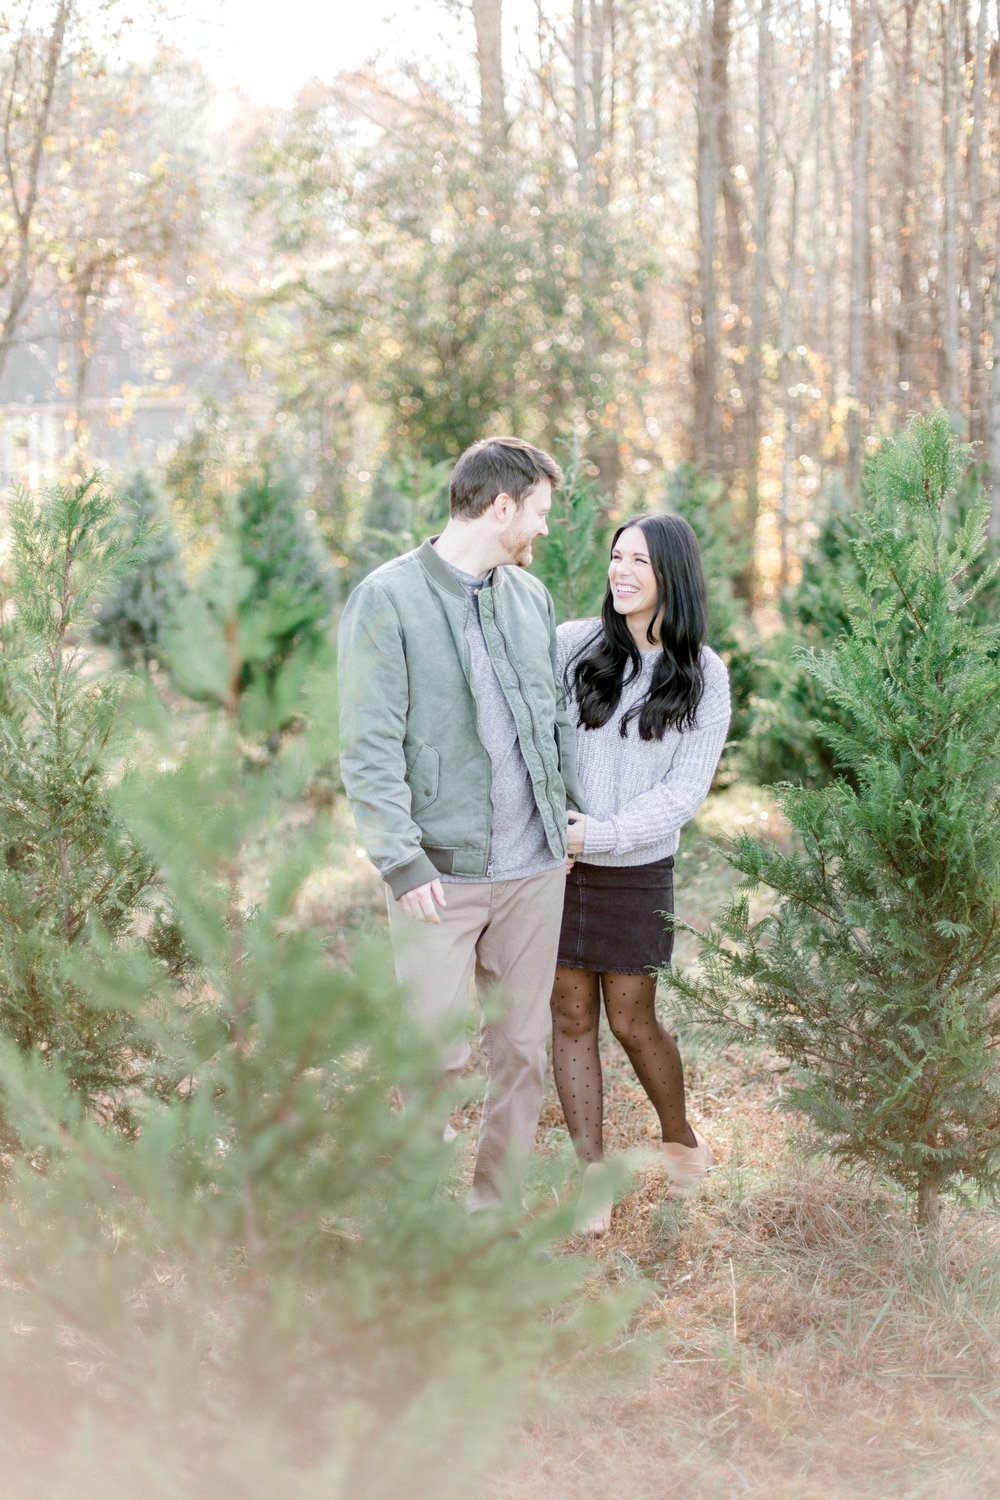 Jessica Sgubin Photography Atlanta Photographer Atlanta Portrait Photographer Atlanta engagement photographer atlanta family photographer atlanta baby photograpehr-20.jpg